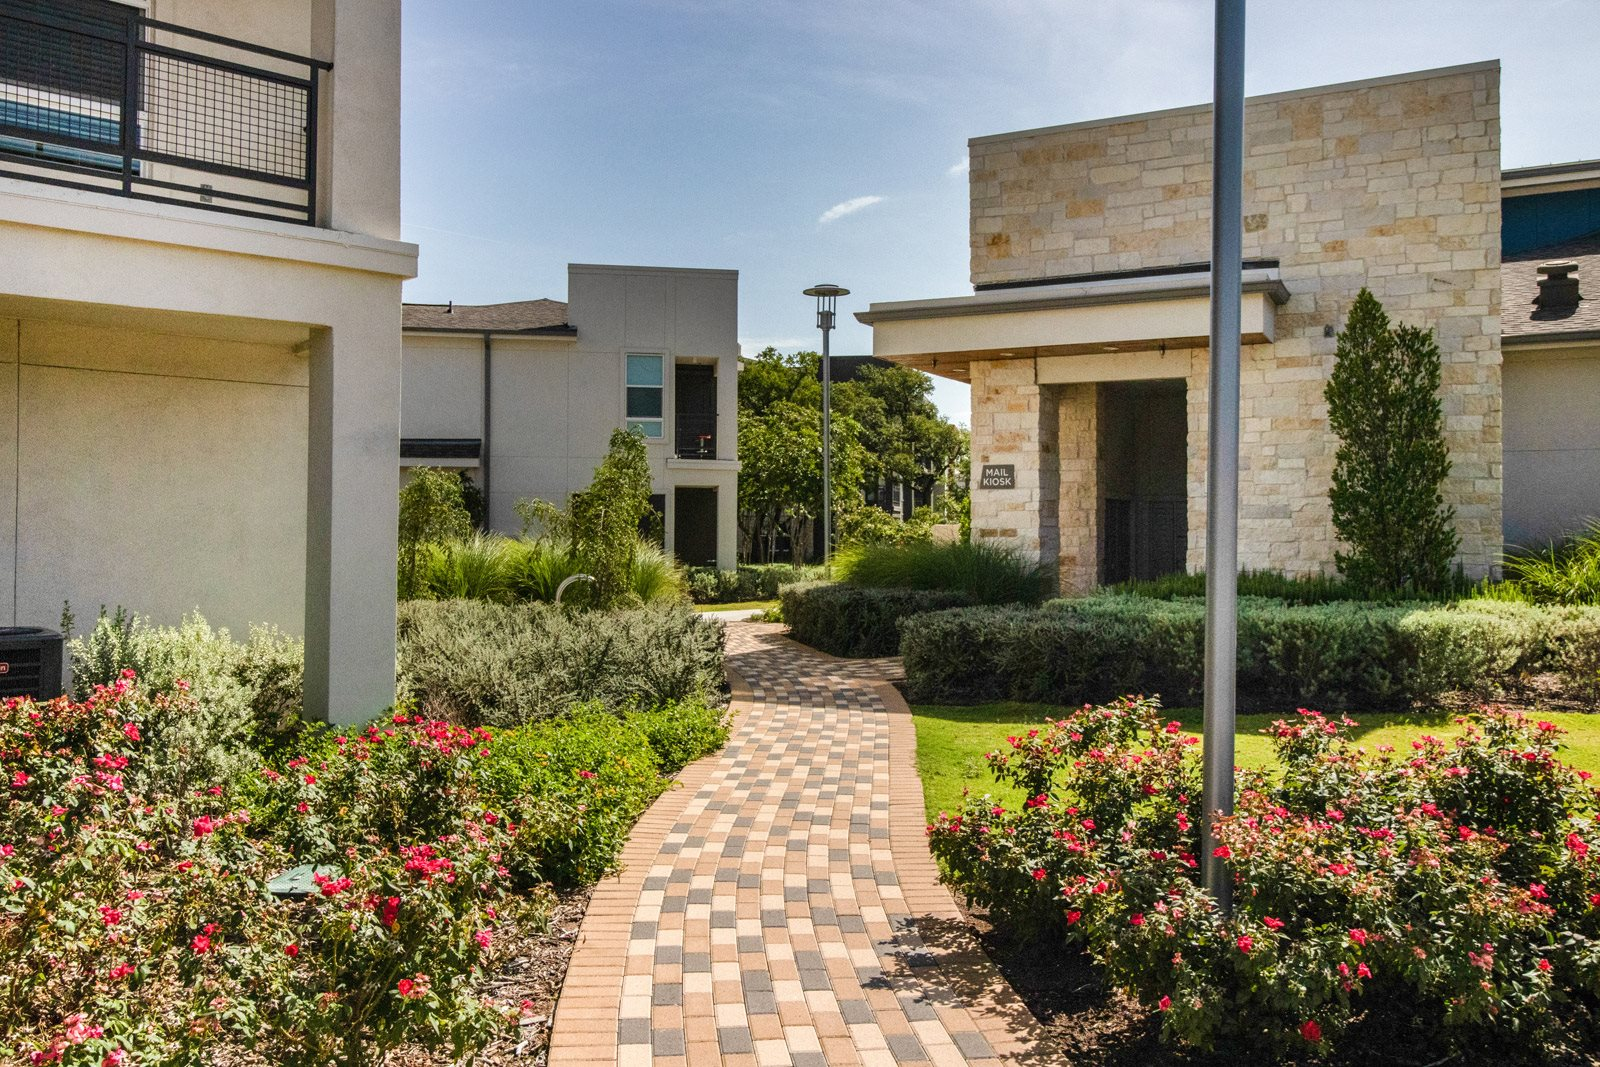 Package Delivery and Receiving at Windsor Republic Place, Austin, 78727